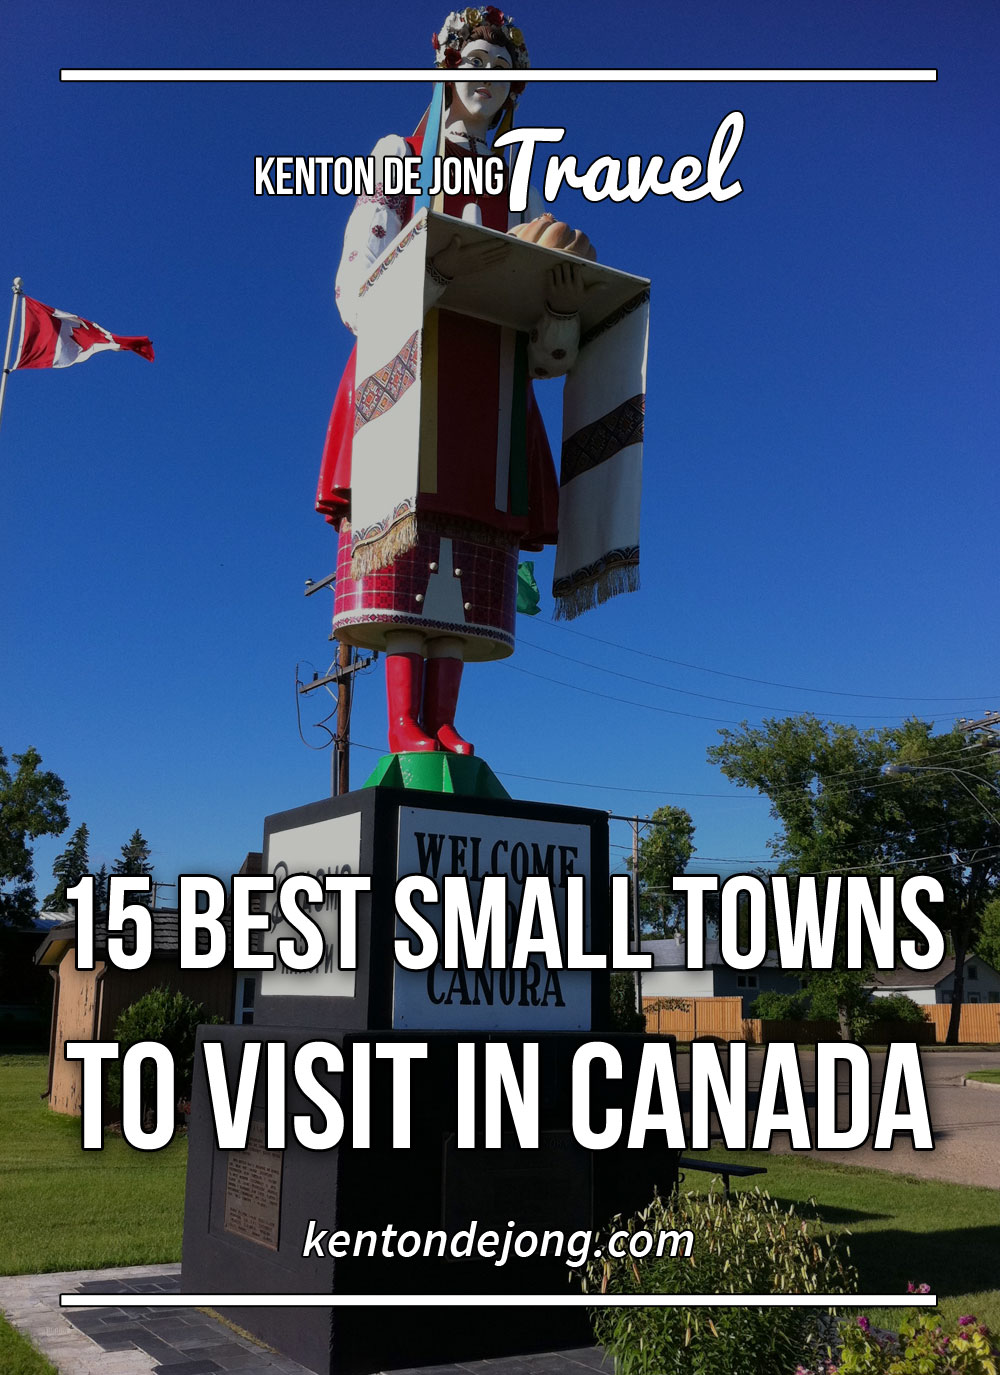 15 Best Small Towns to Visit in Canada